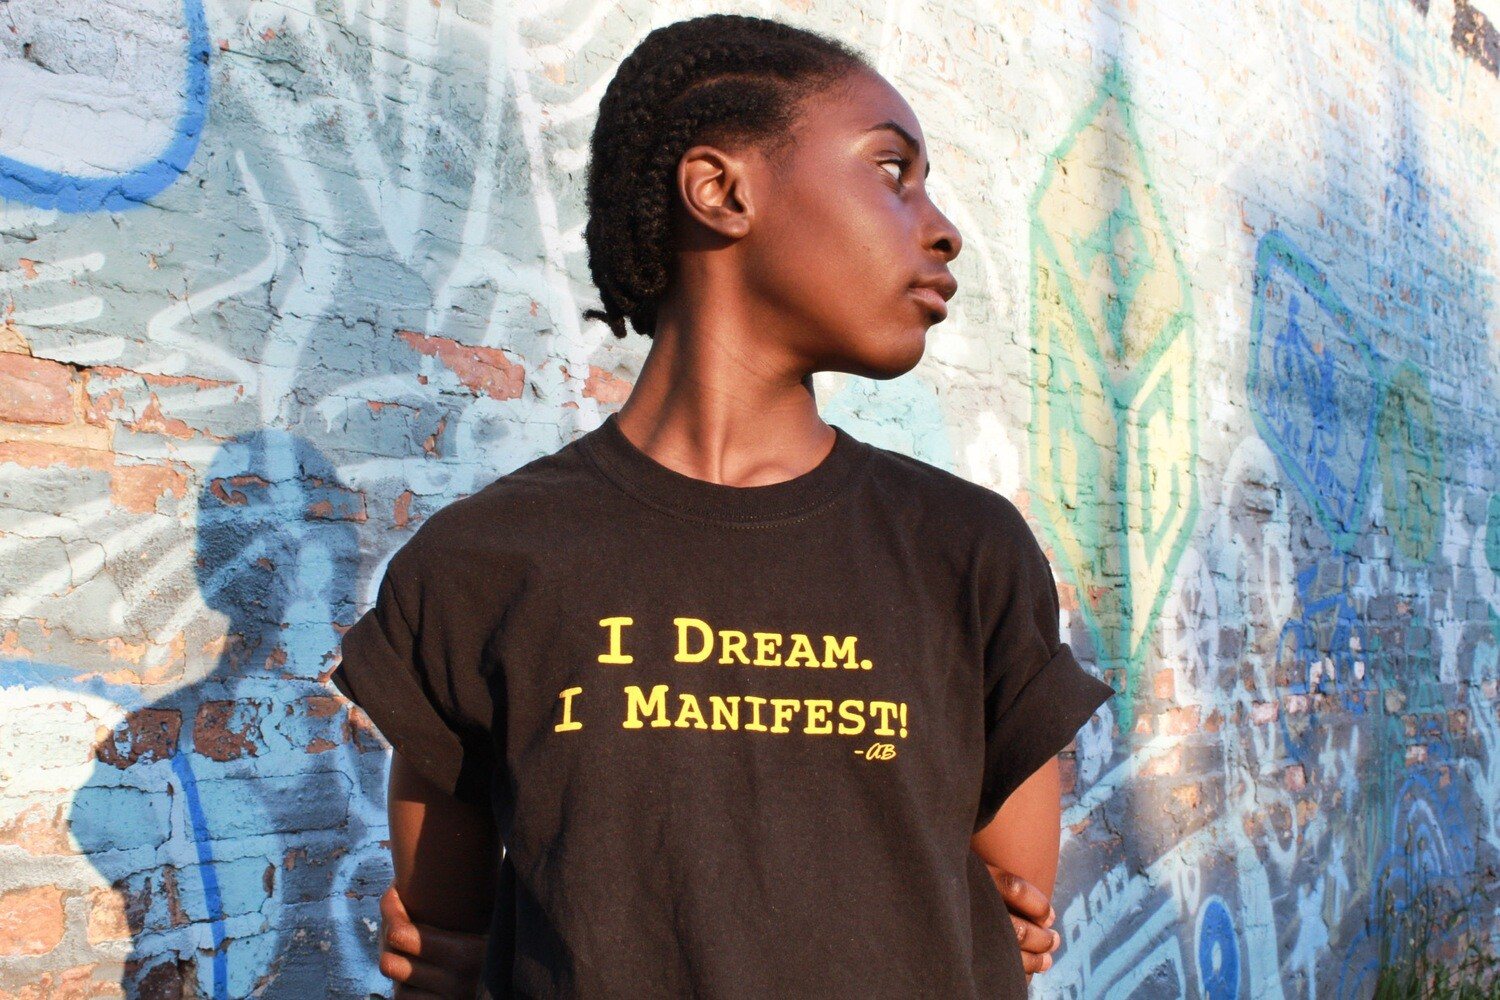 Manifest! Tee for Children (Youth LARGE)